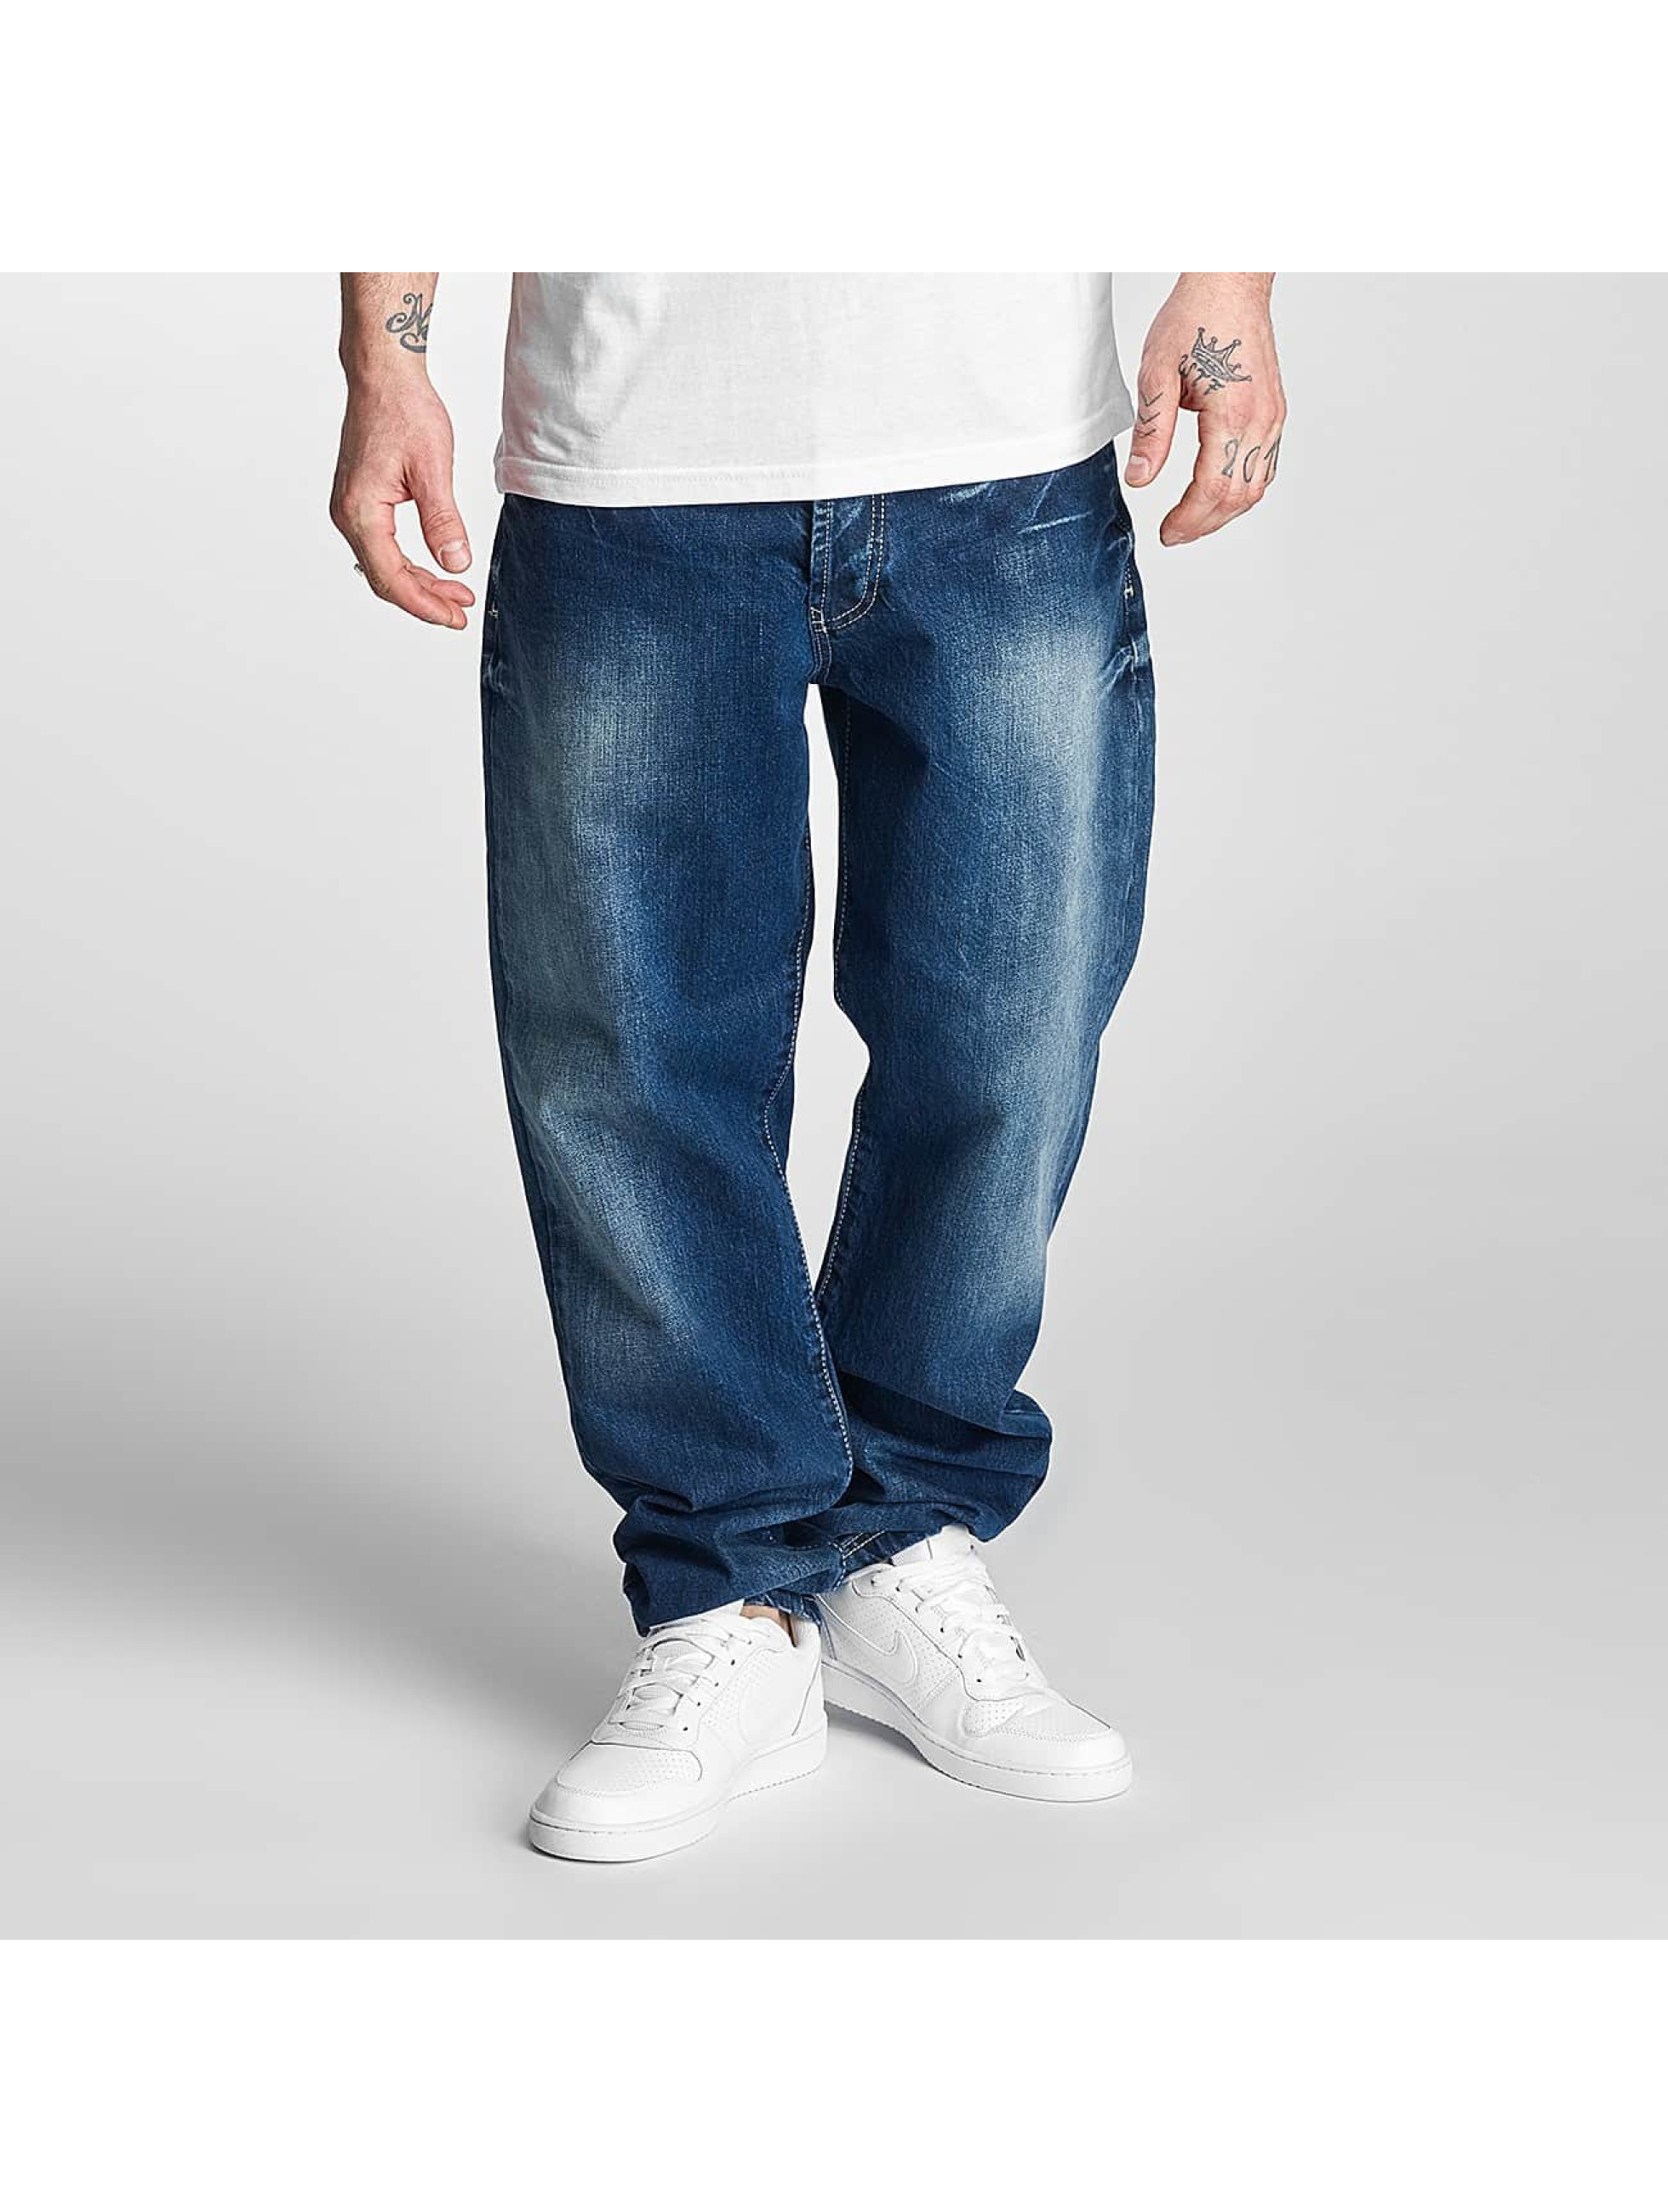 Thug Life / Carrot Fit Jeans Anadyr in blue W 30 L 32